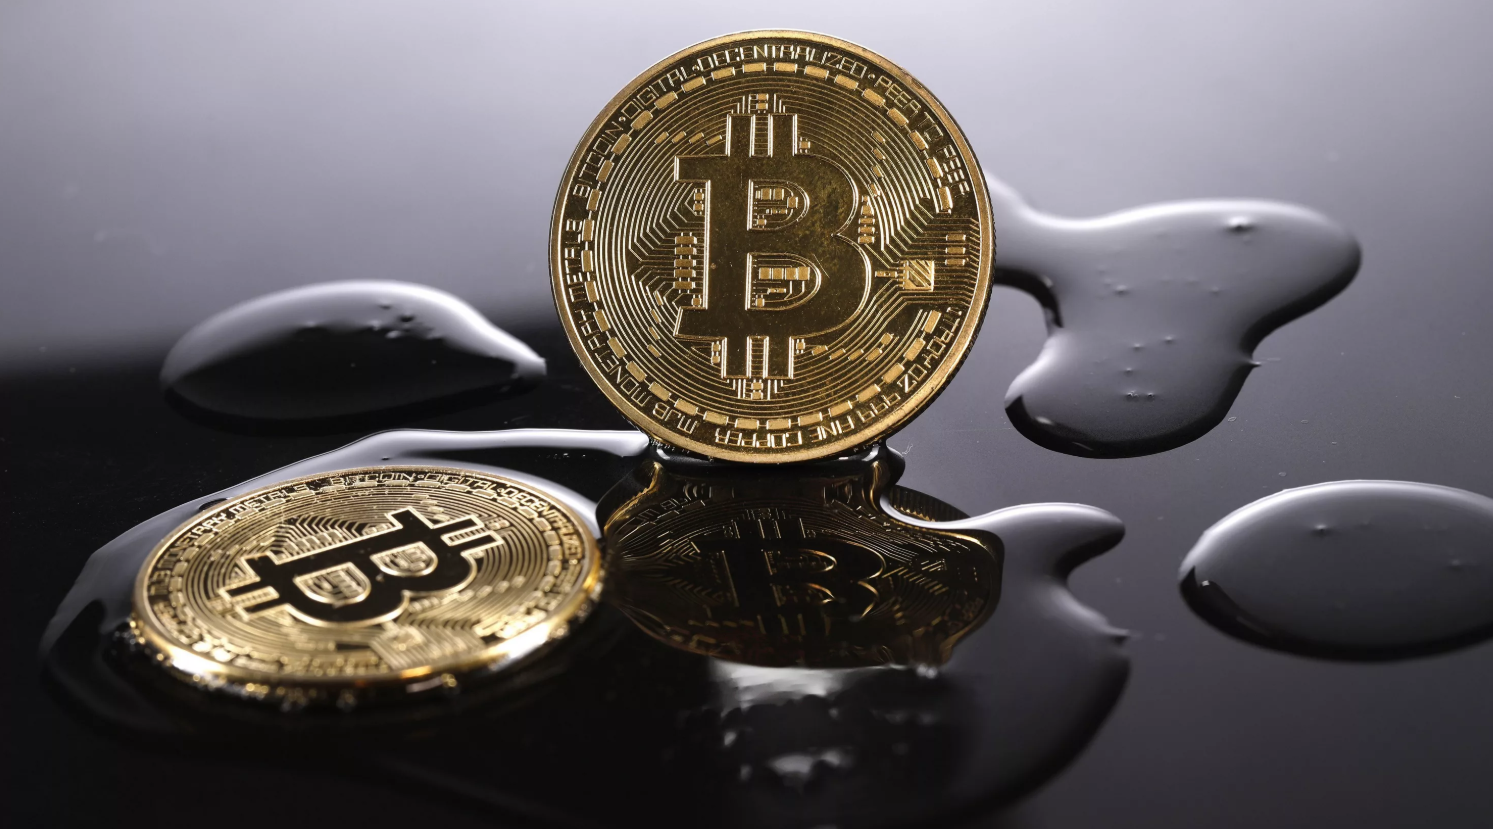 Bit-comment: Bitcoin reached a local high of $10,900